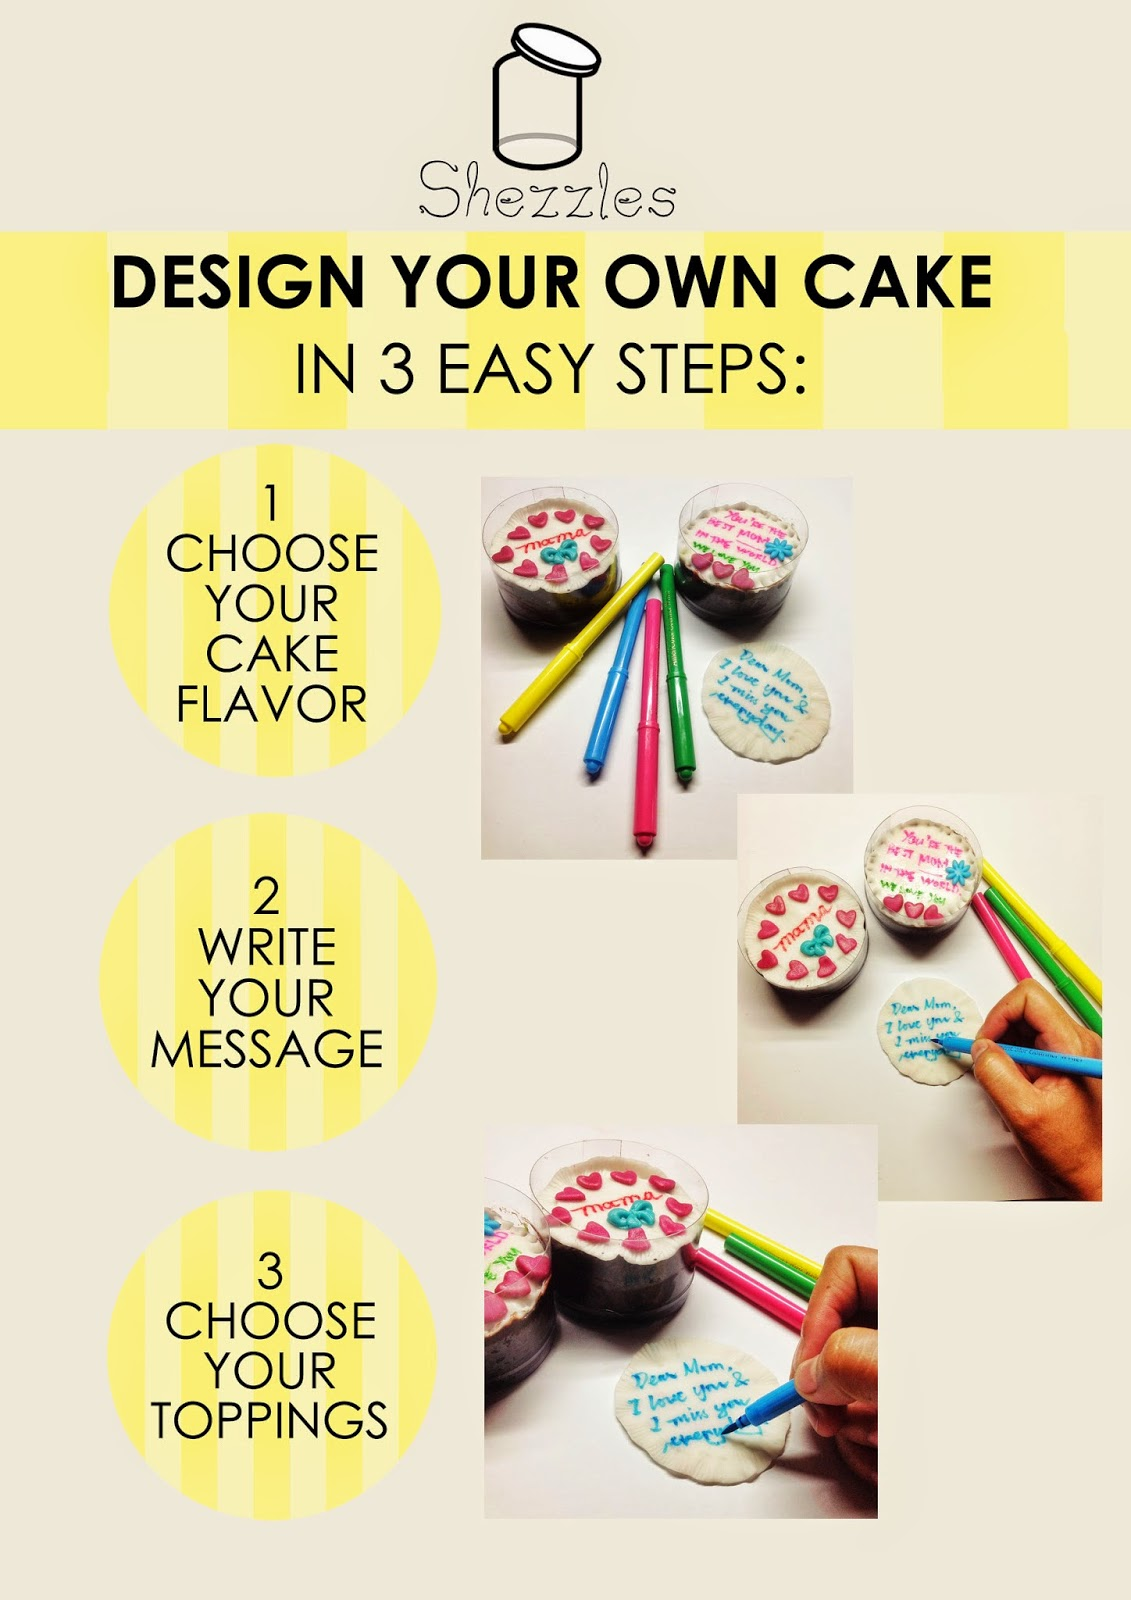 Design Your Own Cake Stencil : Shezzles Dessert in a jar: Design Your Own Cake This ...